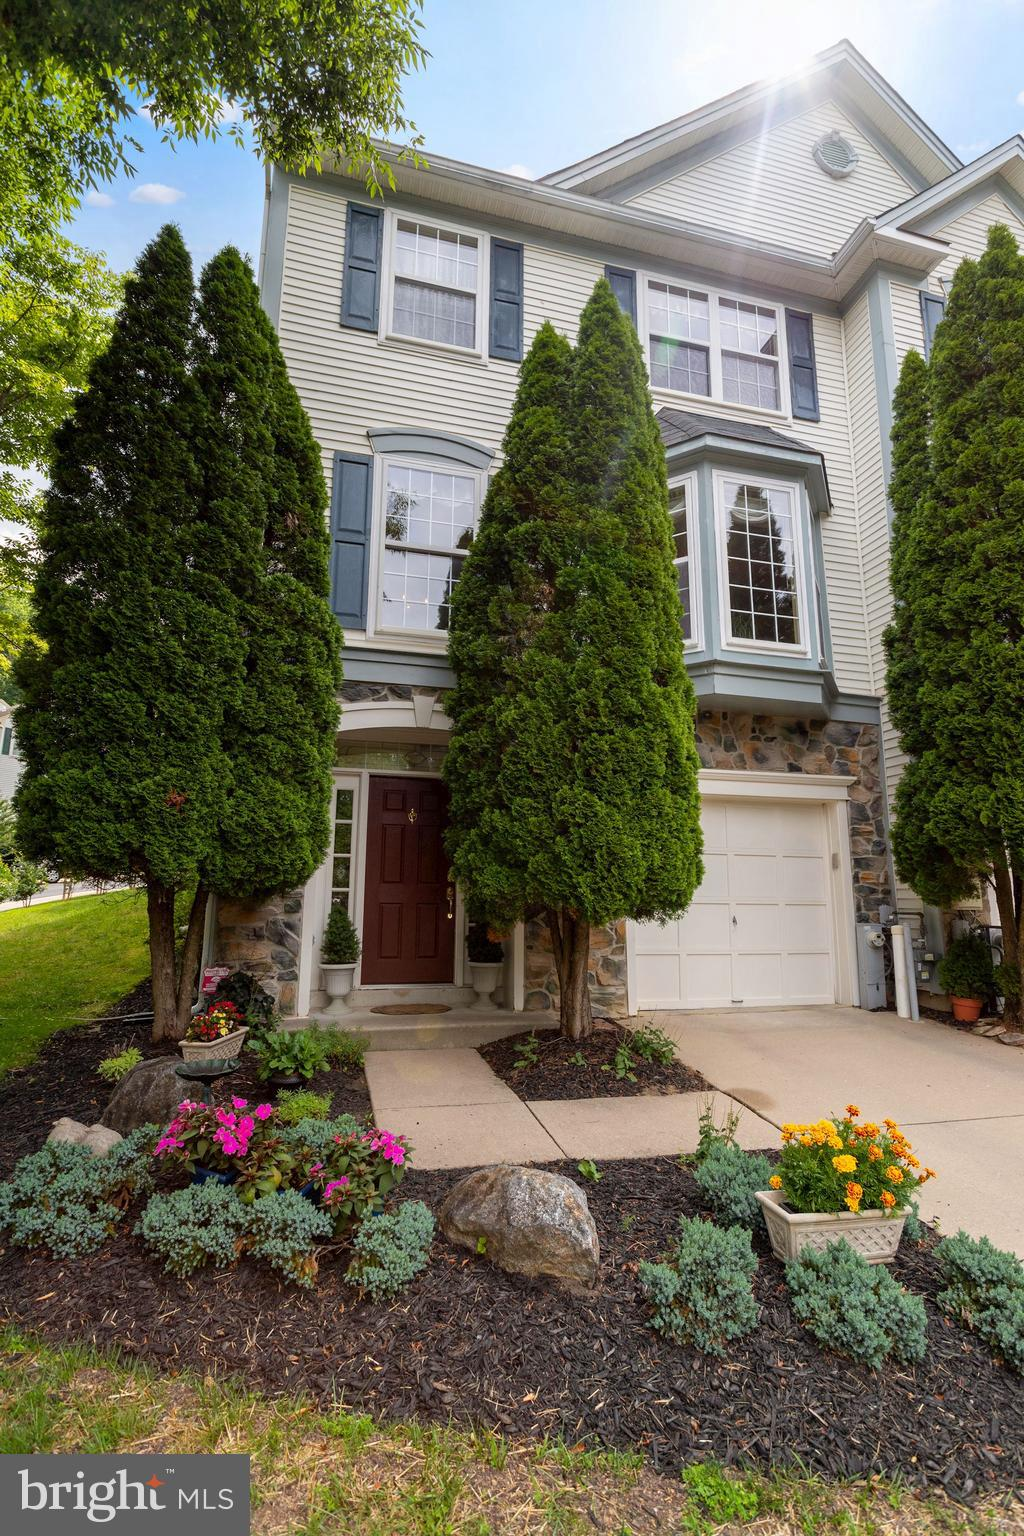 Welcome to Clarks Crossing a small secluded community in a wooded setting with extensive landscaping